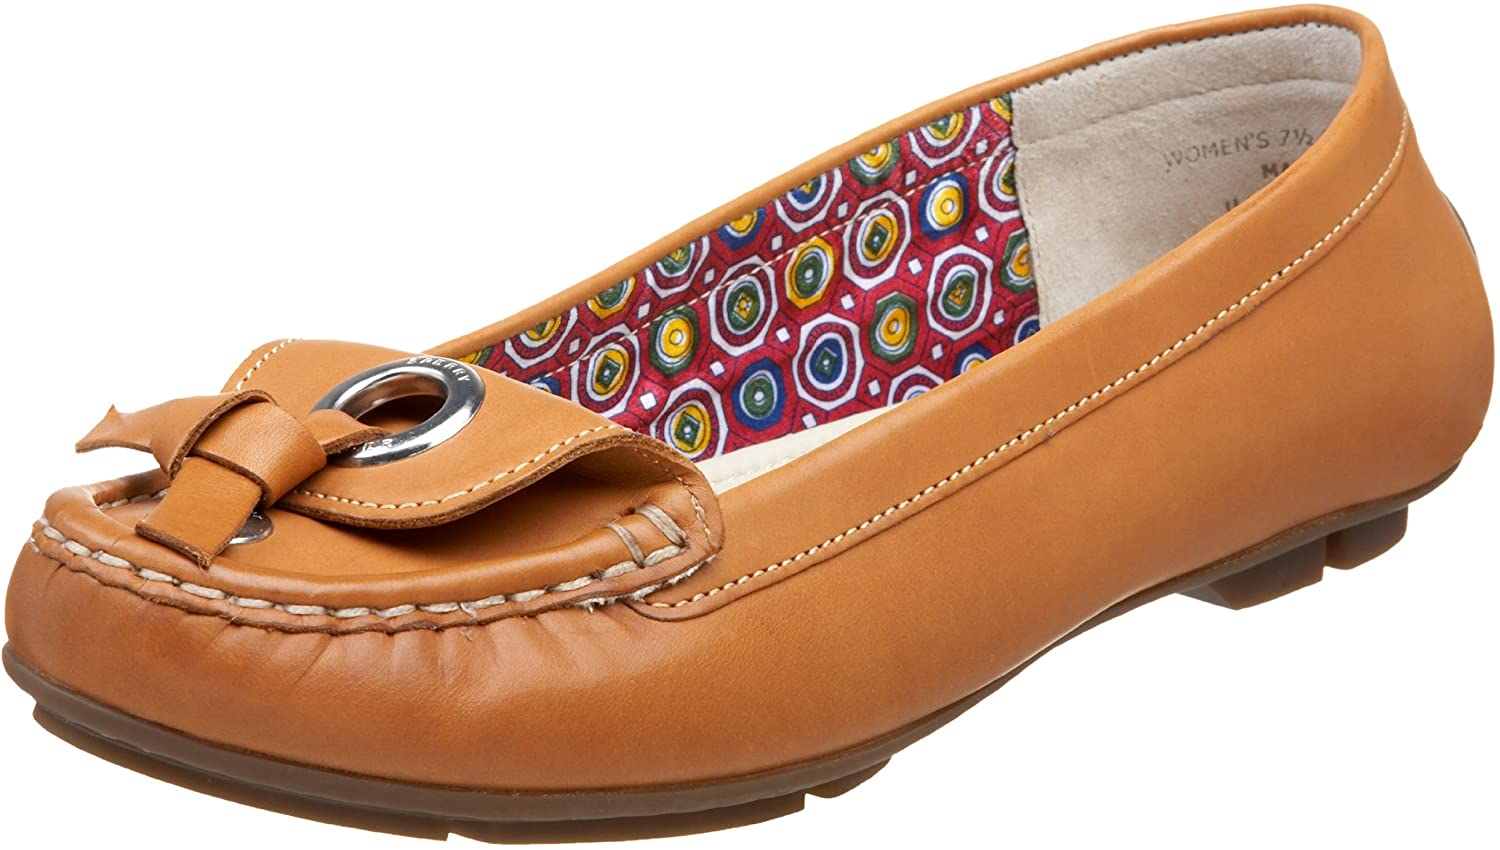 Sperry Top-Sider Women's Newbury Driving Moccasin